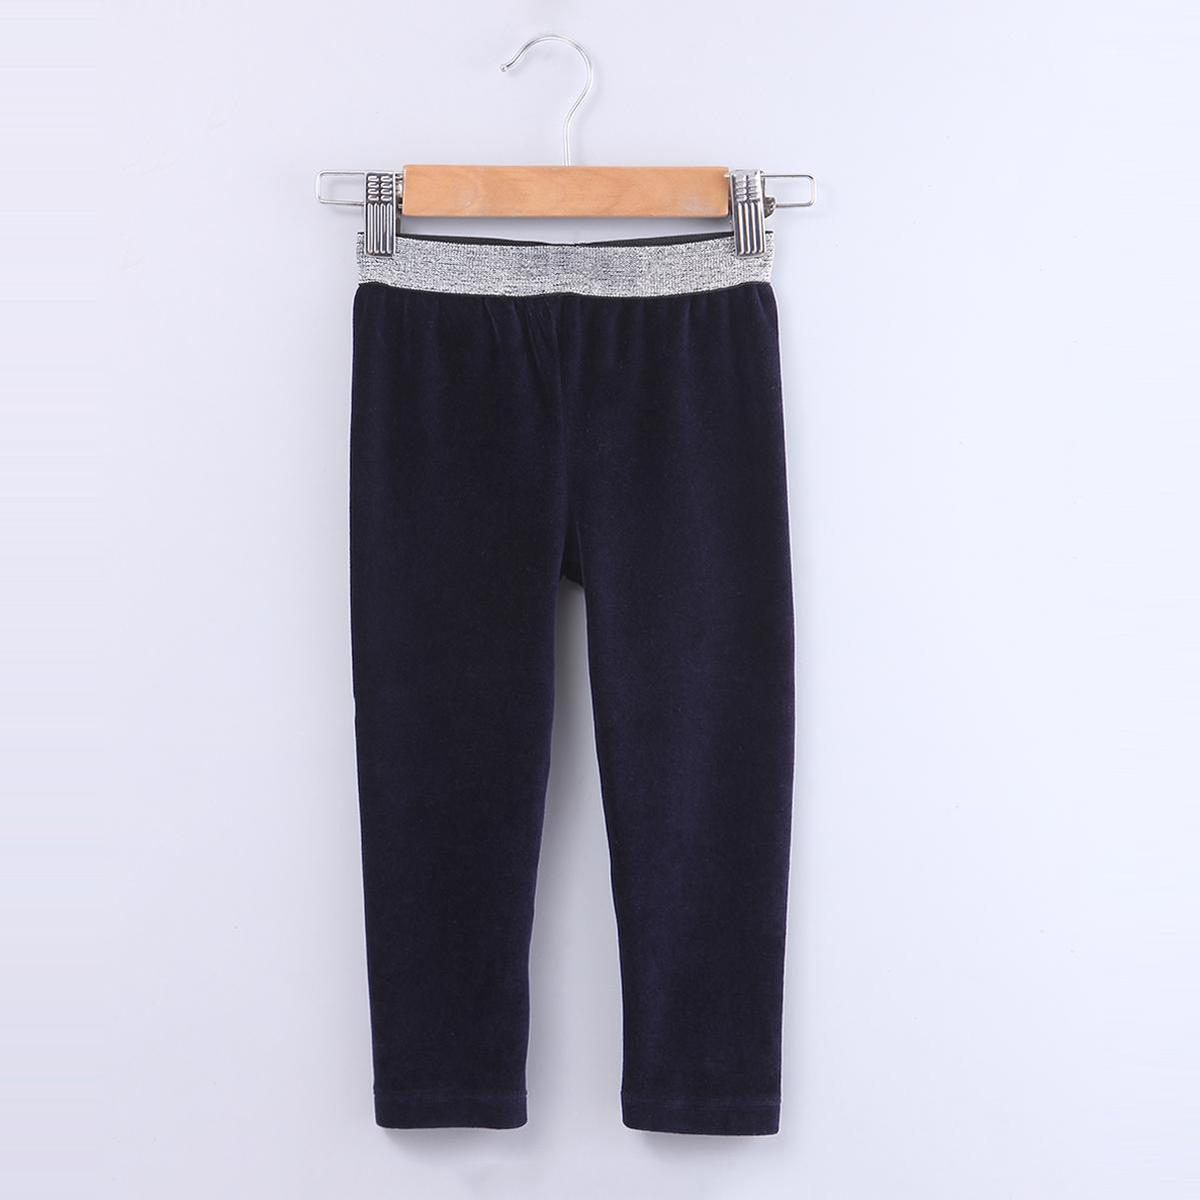 Beebay - Navy Blue Colored Lurex Waistband Velour Cotton Stretchable Legging For Kids Girls